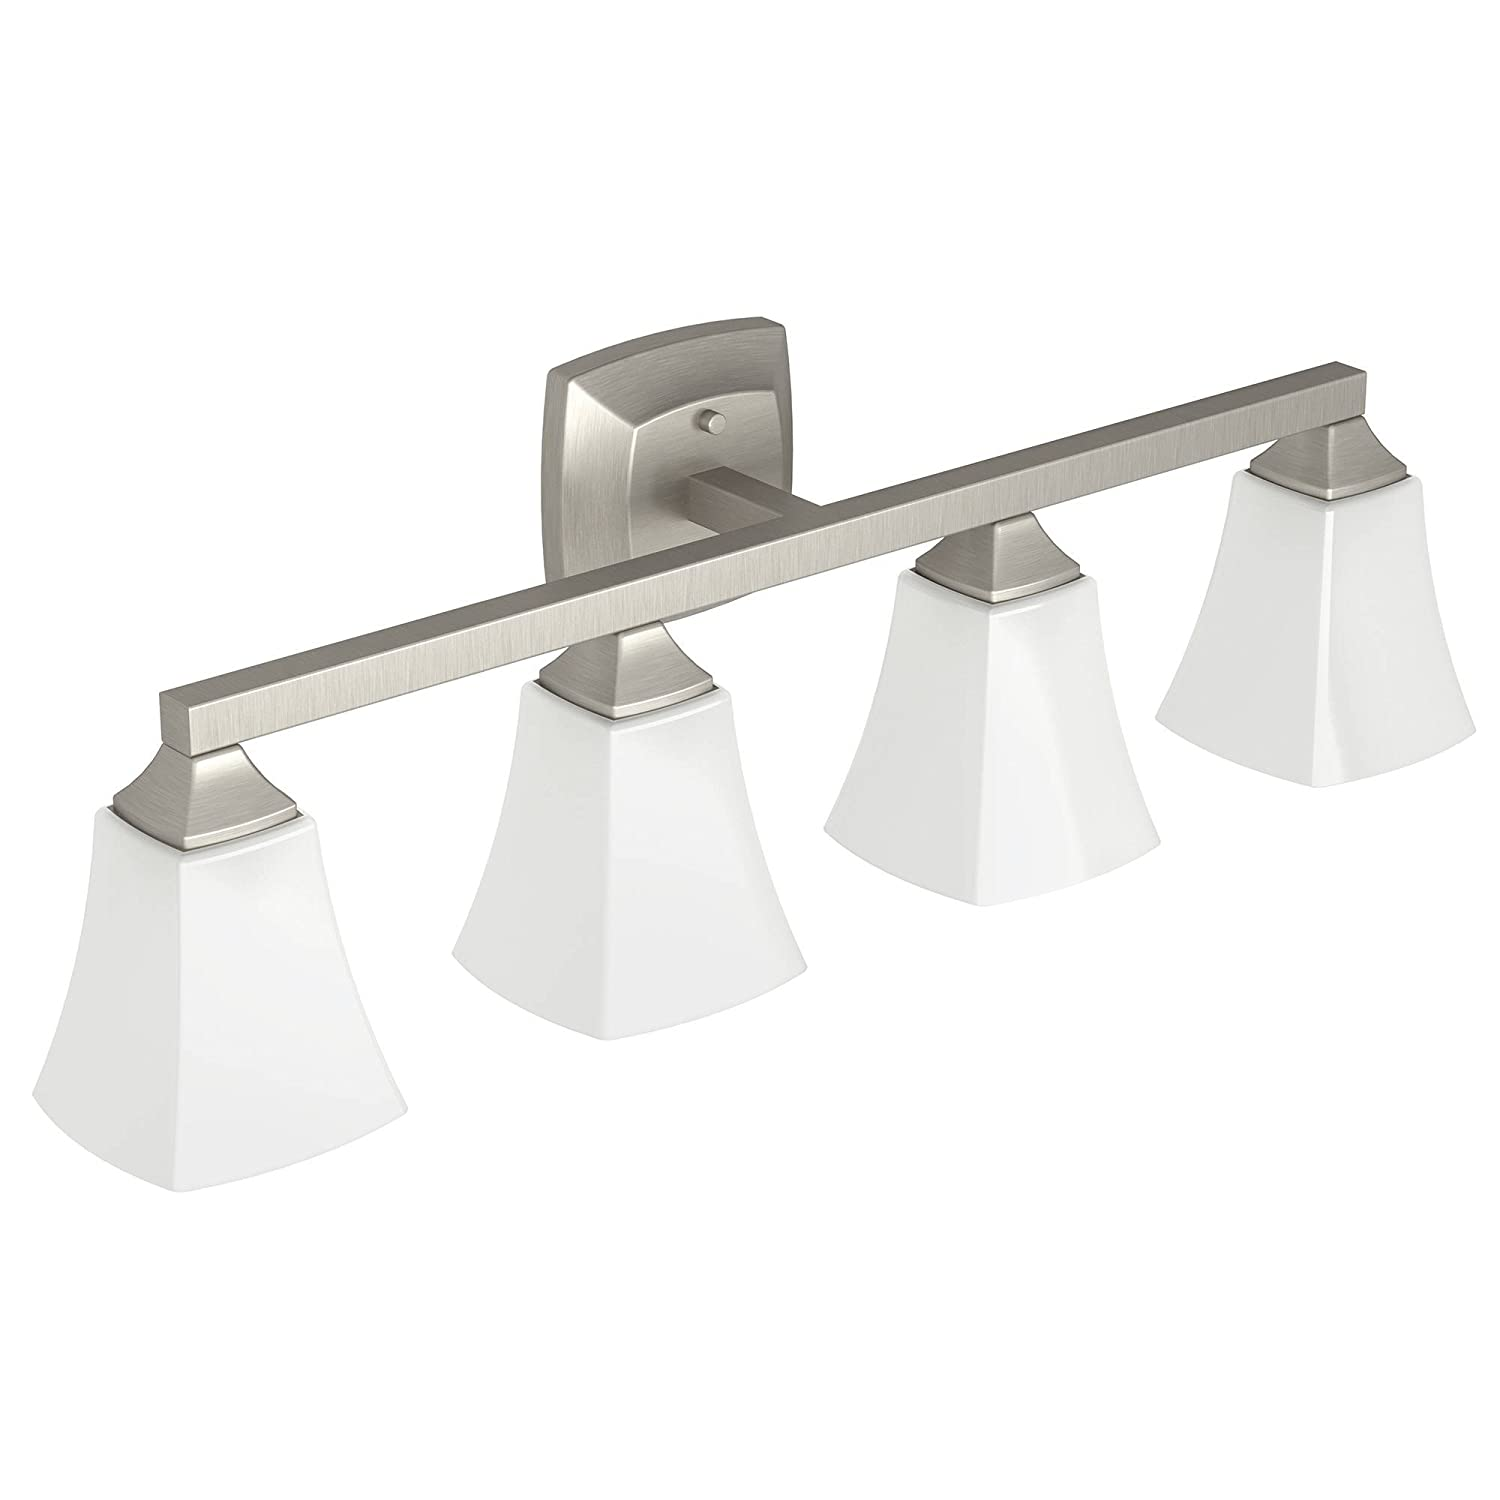 Brushed Nickel Bathroom Lights. Moen Yb5164bn Voss Bath Lighting Four Globe Brushed Nickel Amazon Com